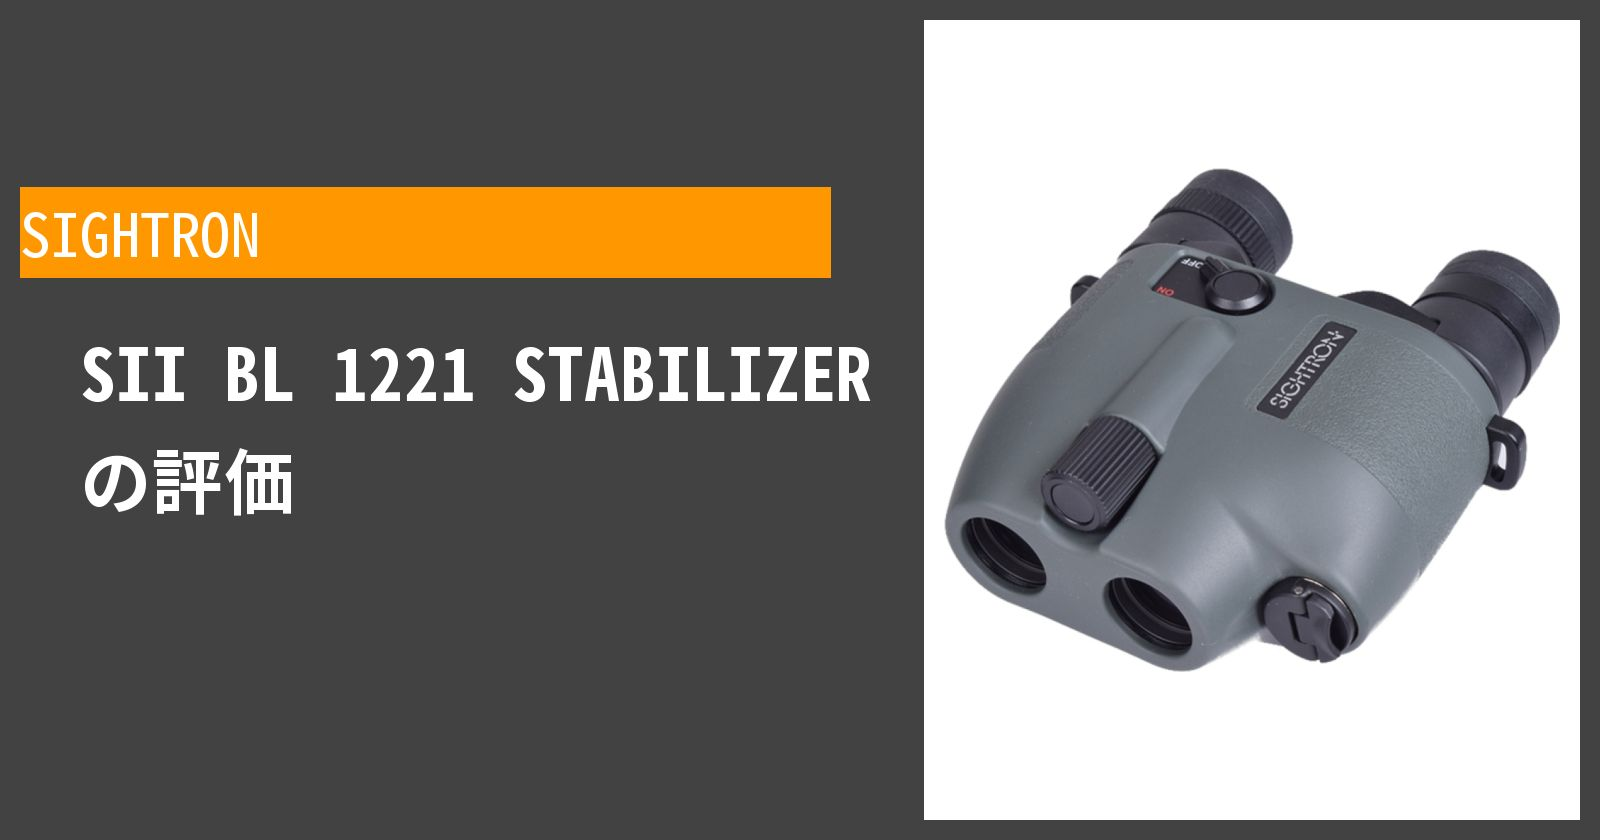 SII BL 1221 STABILIZERを徹底評価